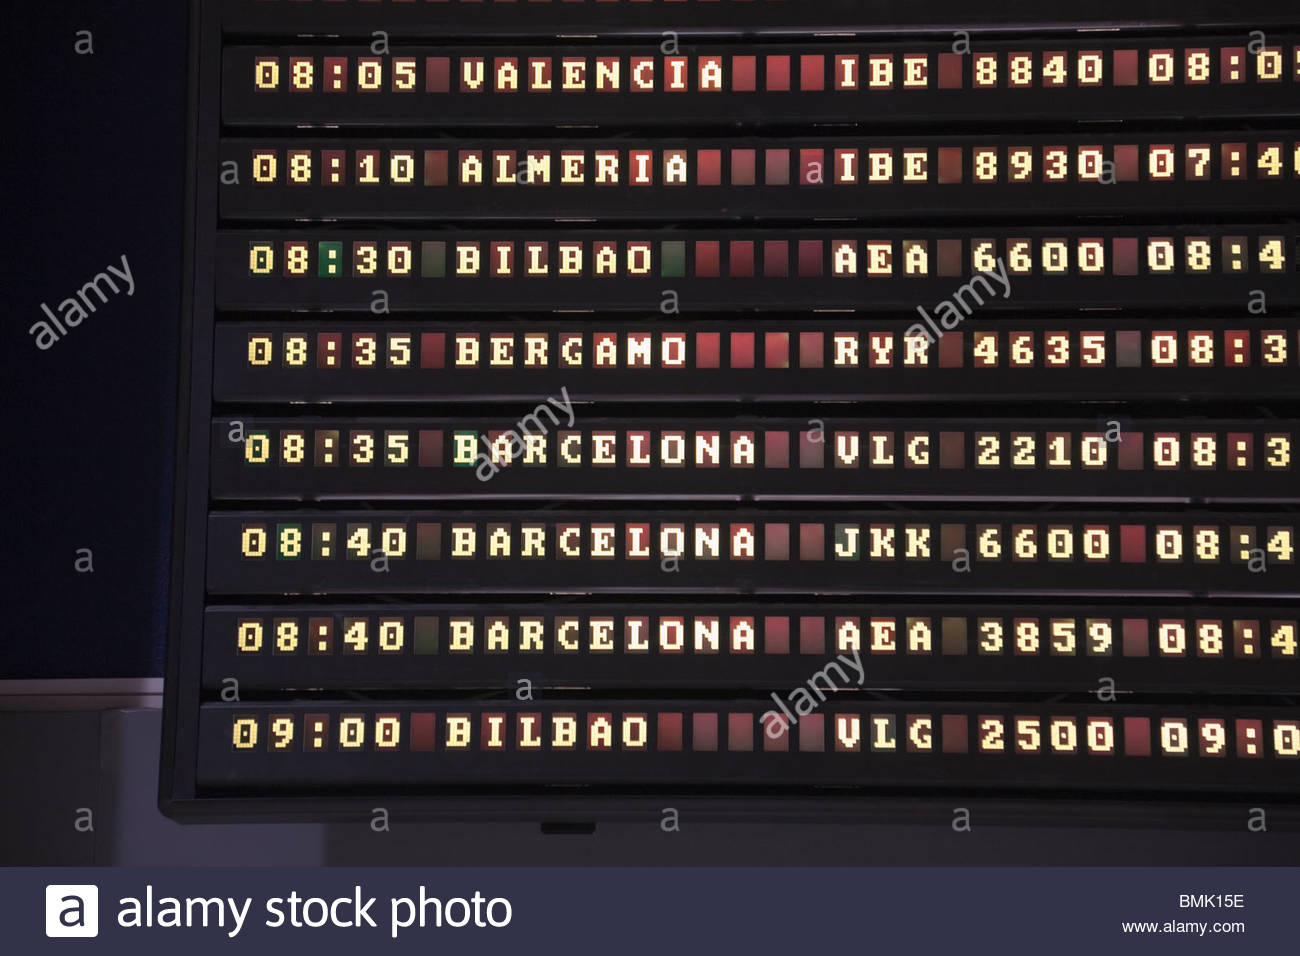 Departure board in airport - Stock Image